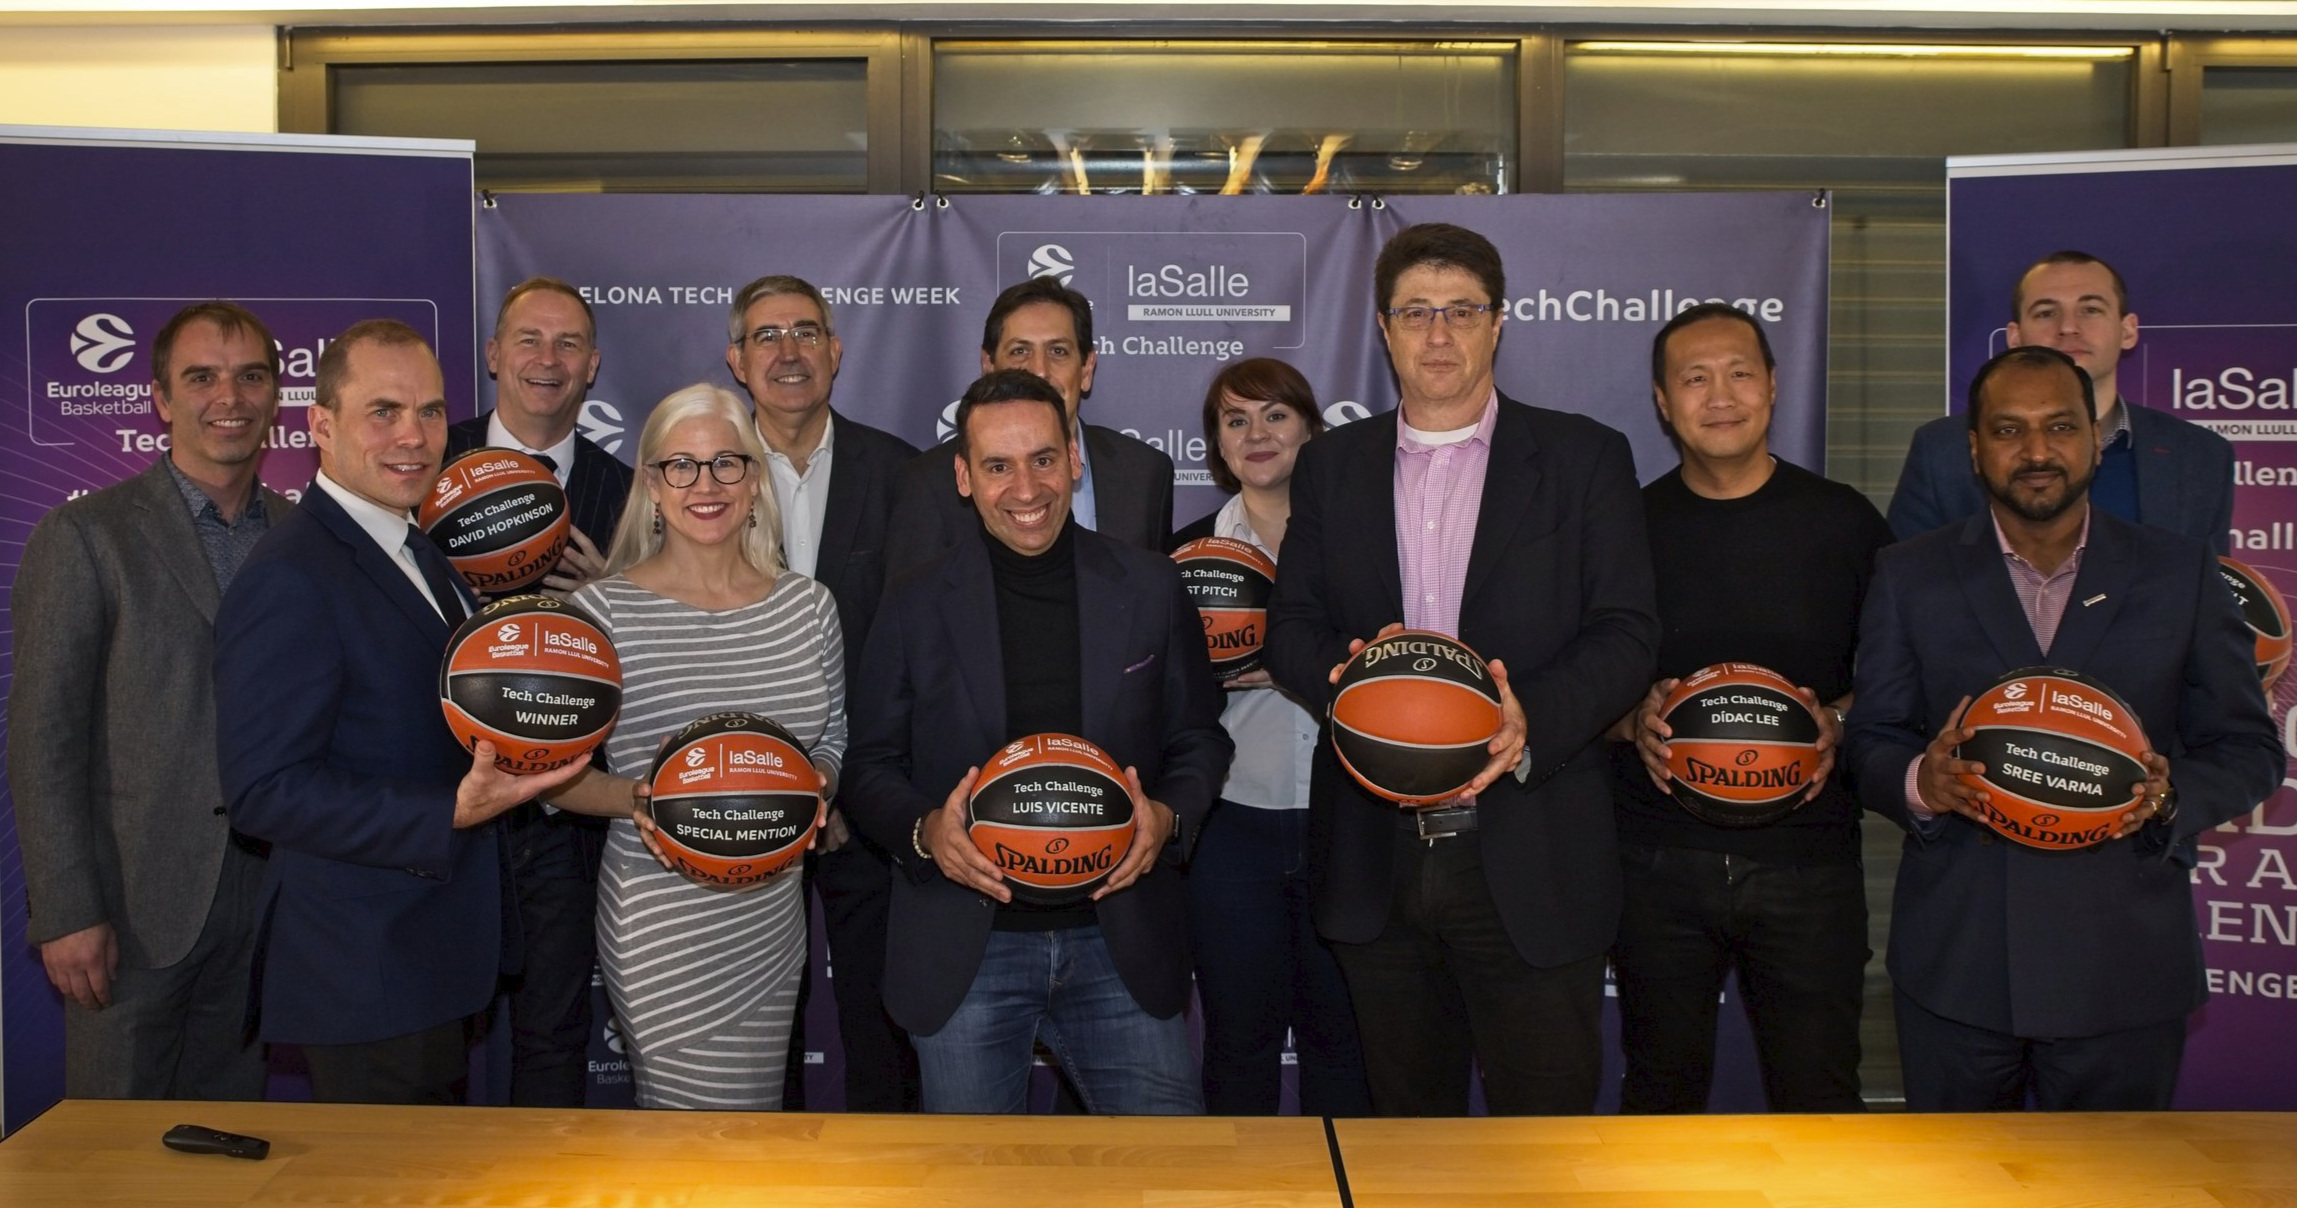 The judges and winners of the Euroleague Basketball Tech Challenge 2019